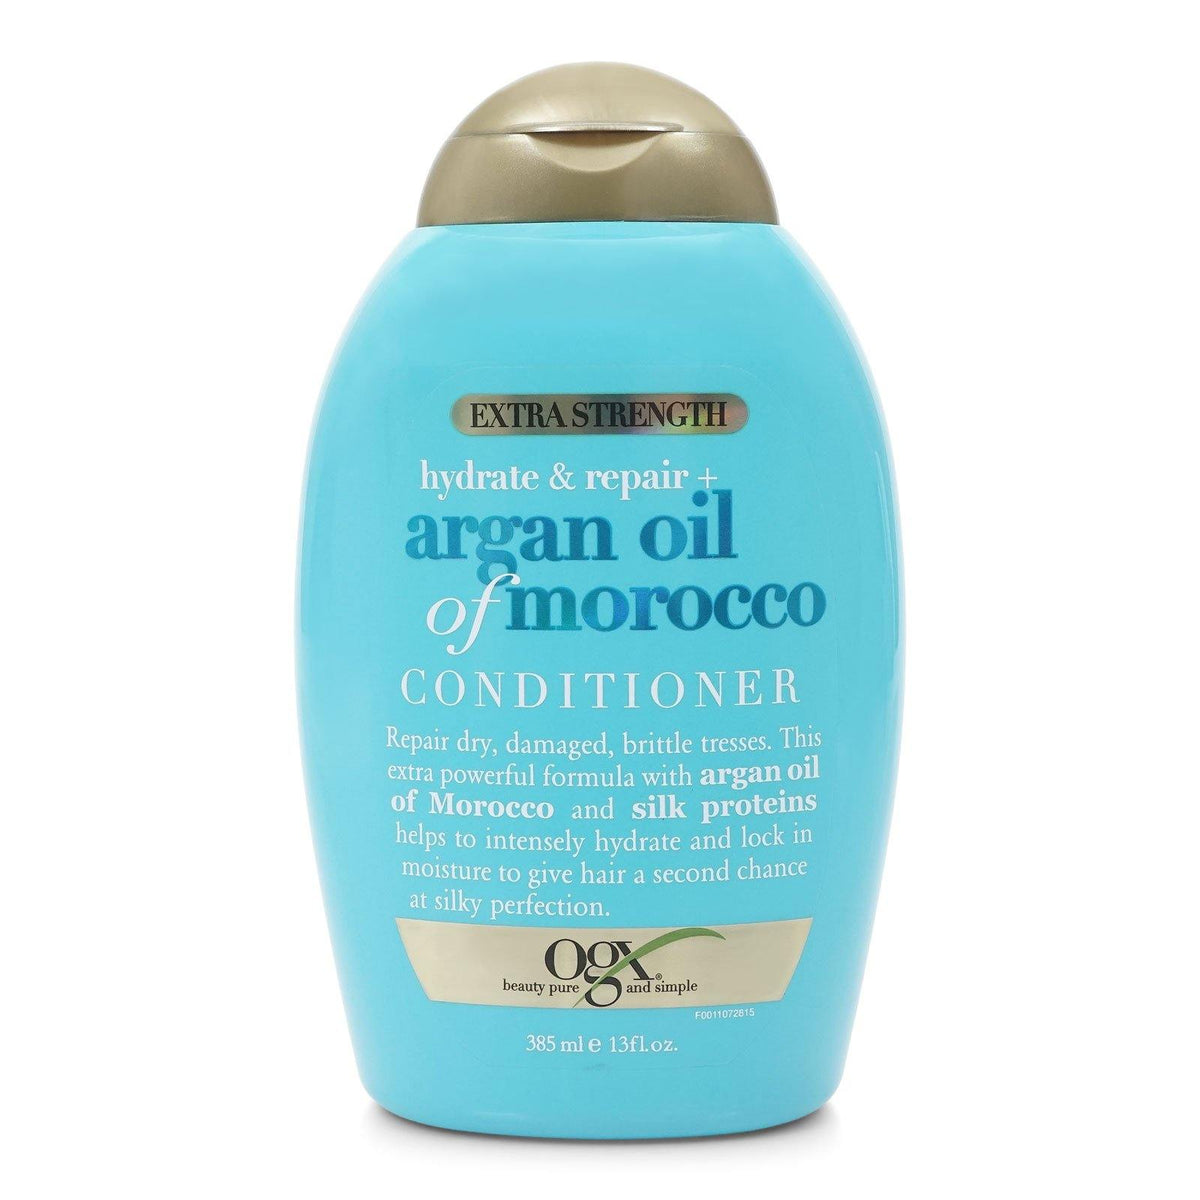 ORGANIX HYDRATE AND REPAIR ARGAN OIL of MOROCCO CONDITIONER (12/cs)